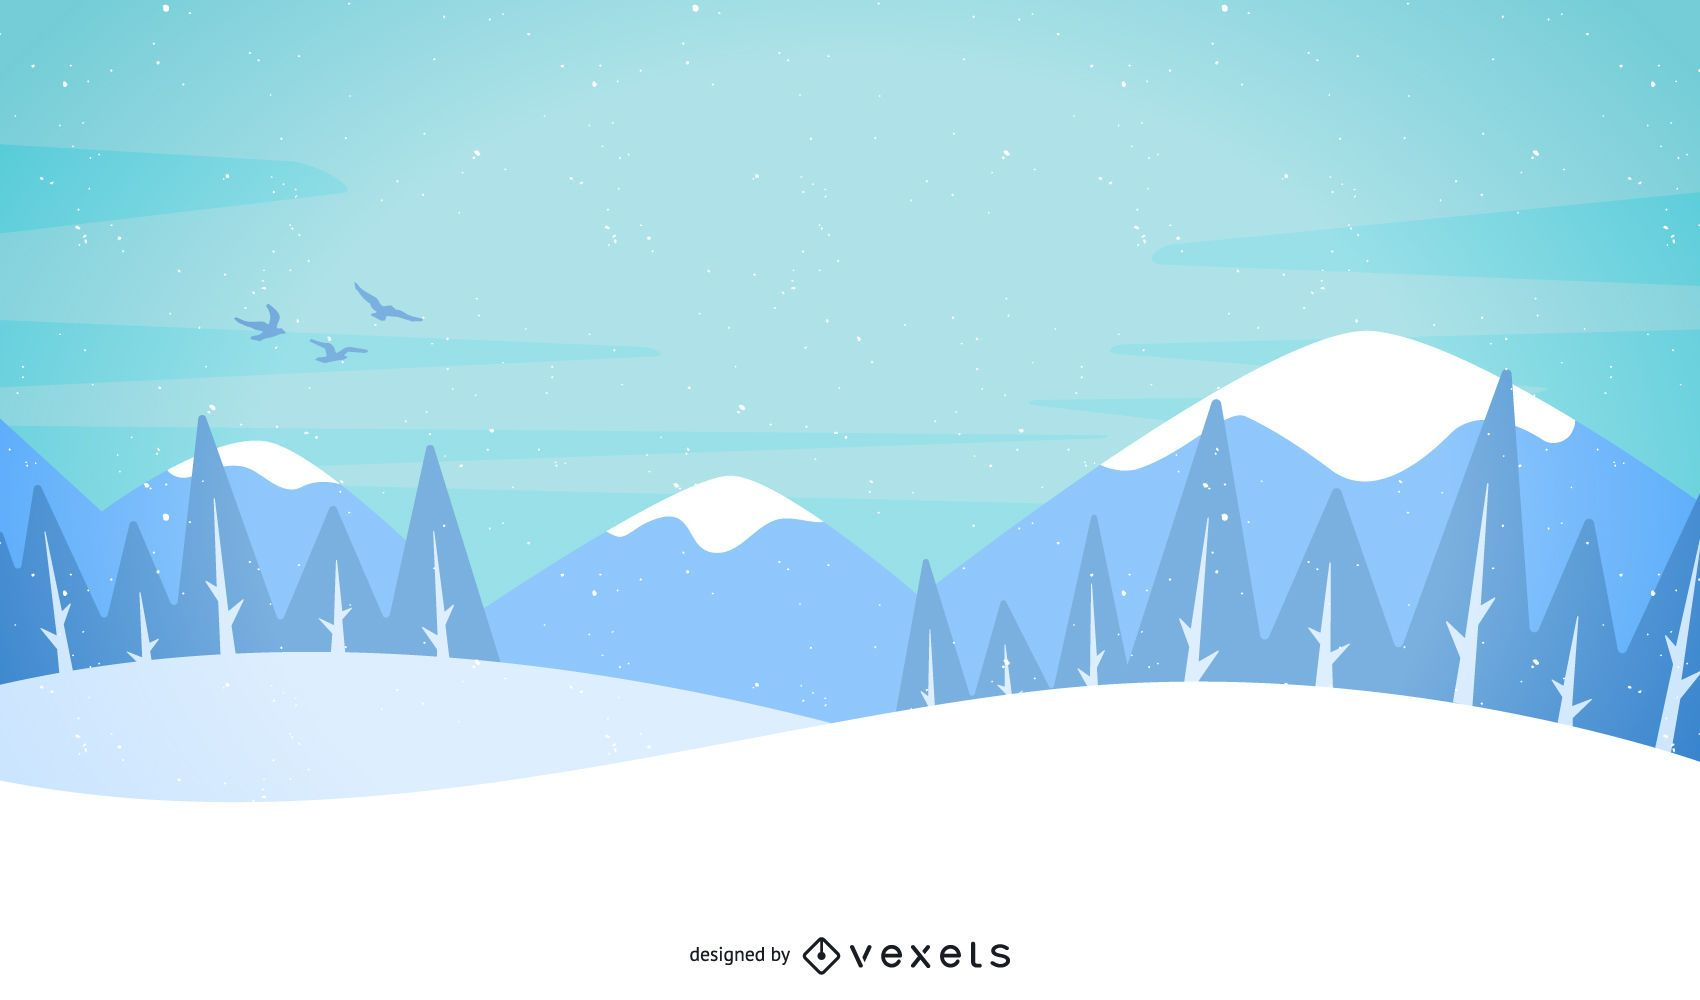 Snow and mountains illustrated landscape